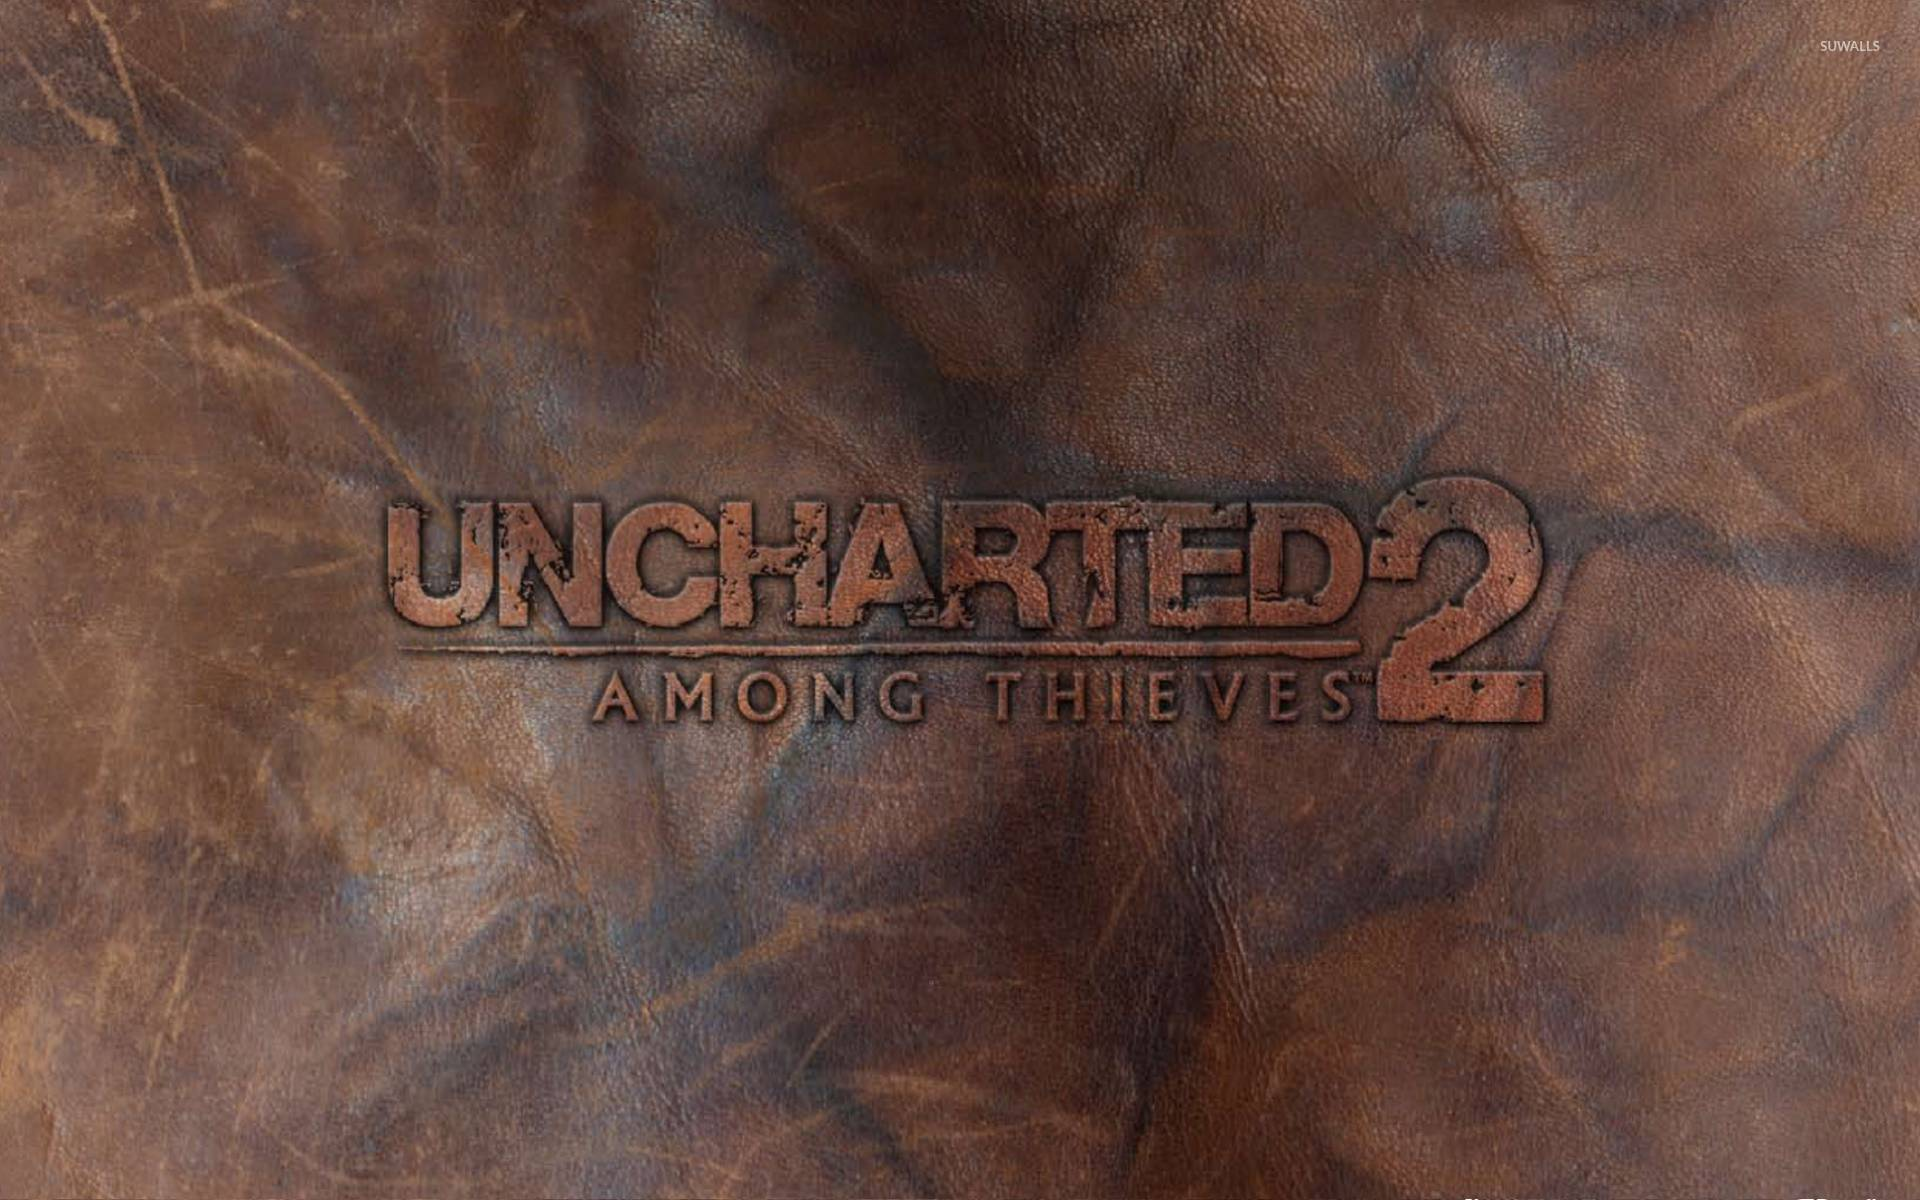 Uncharted 2 Among Thieves wallpaper   Game wallpapers   10121 1280x800